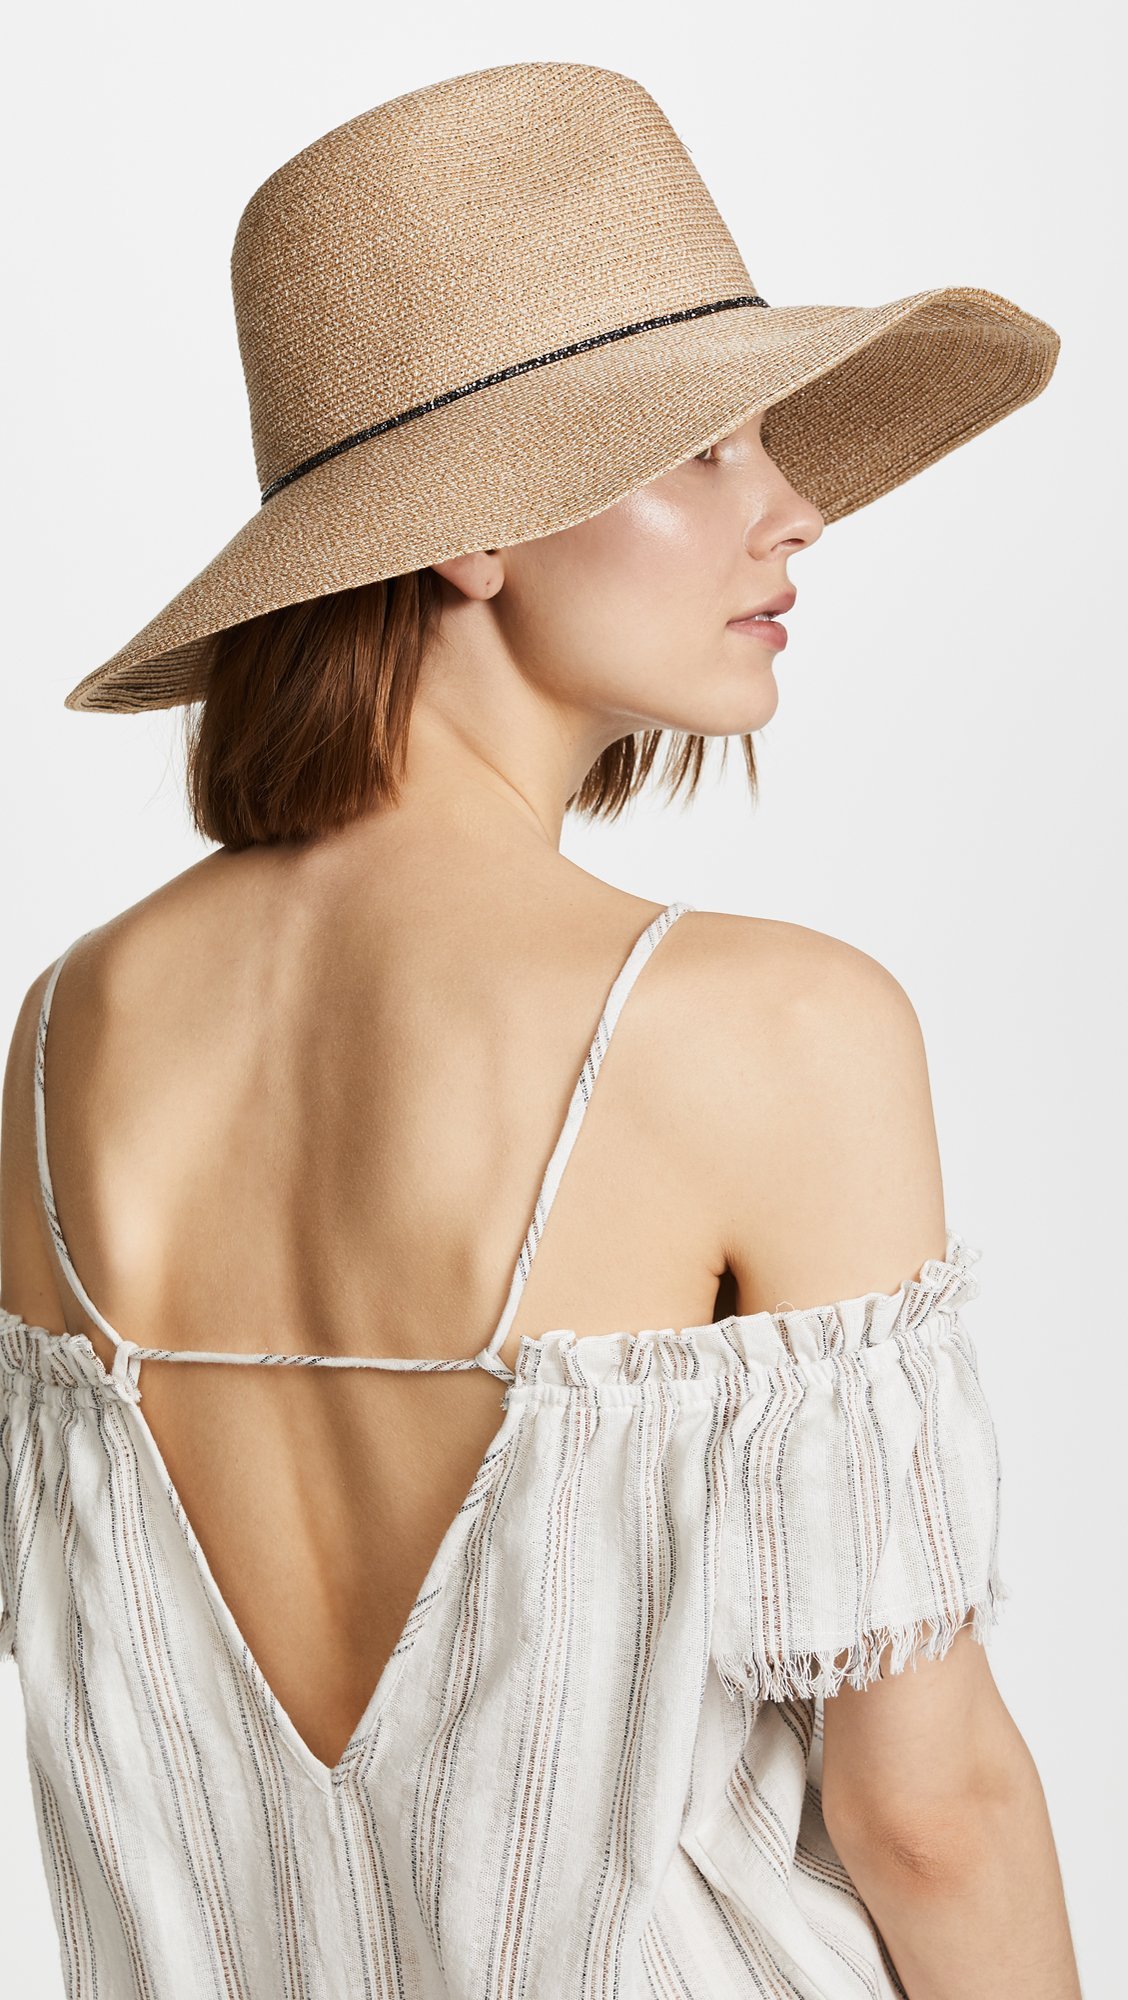 Eugenia Kim Women's Emmanuelle Beach Hat, Sand, One Size by Eugenia Kim (Image #3)